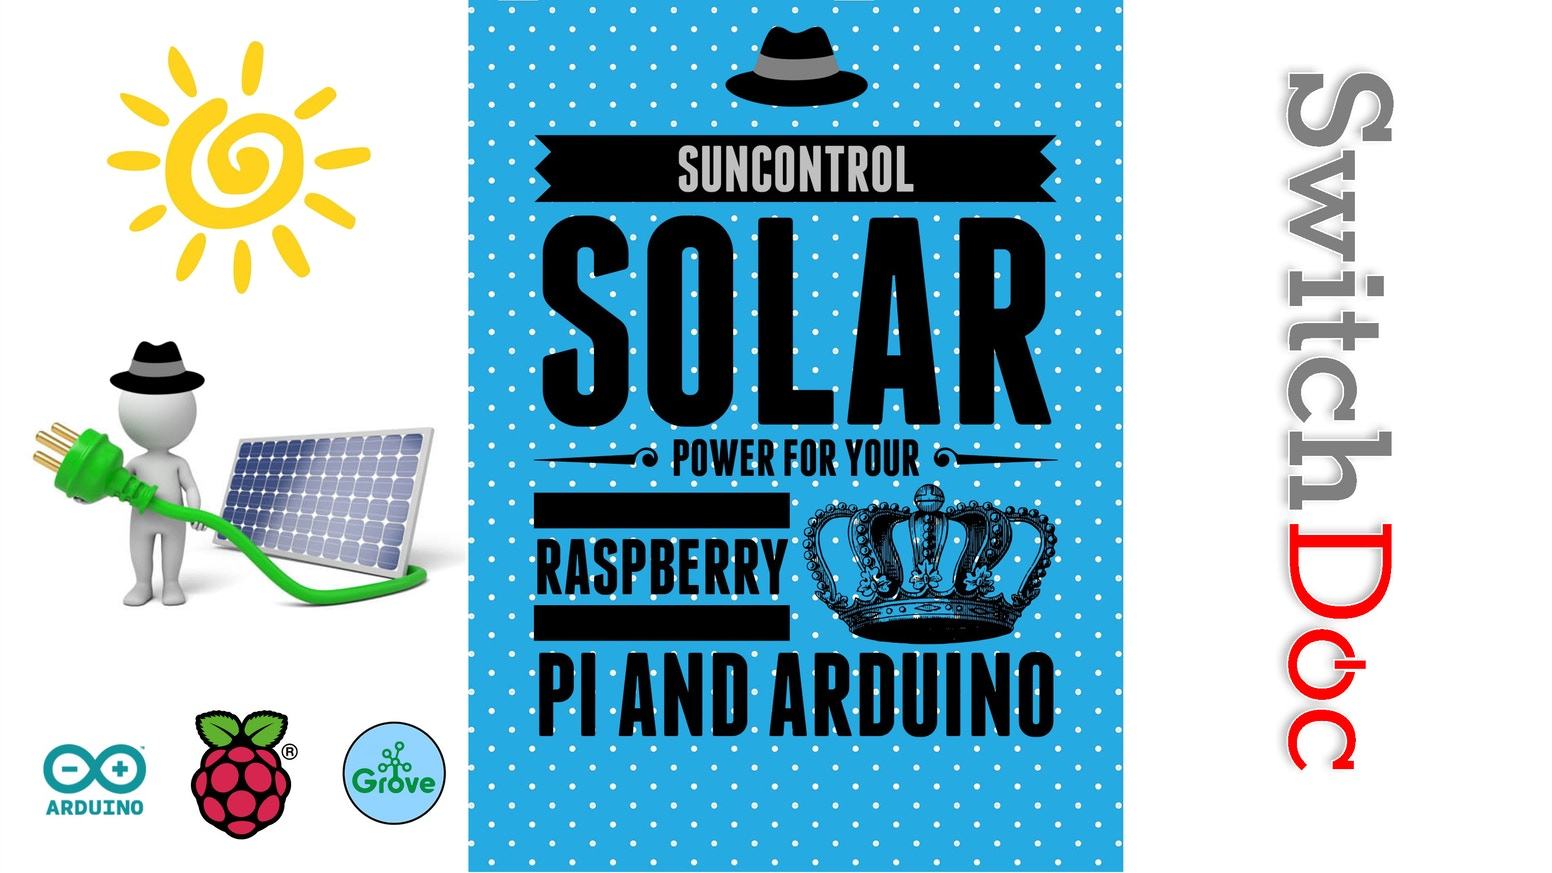 Suncontrol Diy Solar Power For The Raspberry Pi Arduino By Notes This Is A Simple Charger Circuit That Uses An Easy To Use Board Hook Up Your Or Project